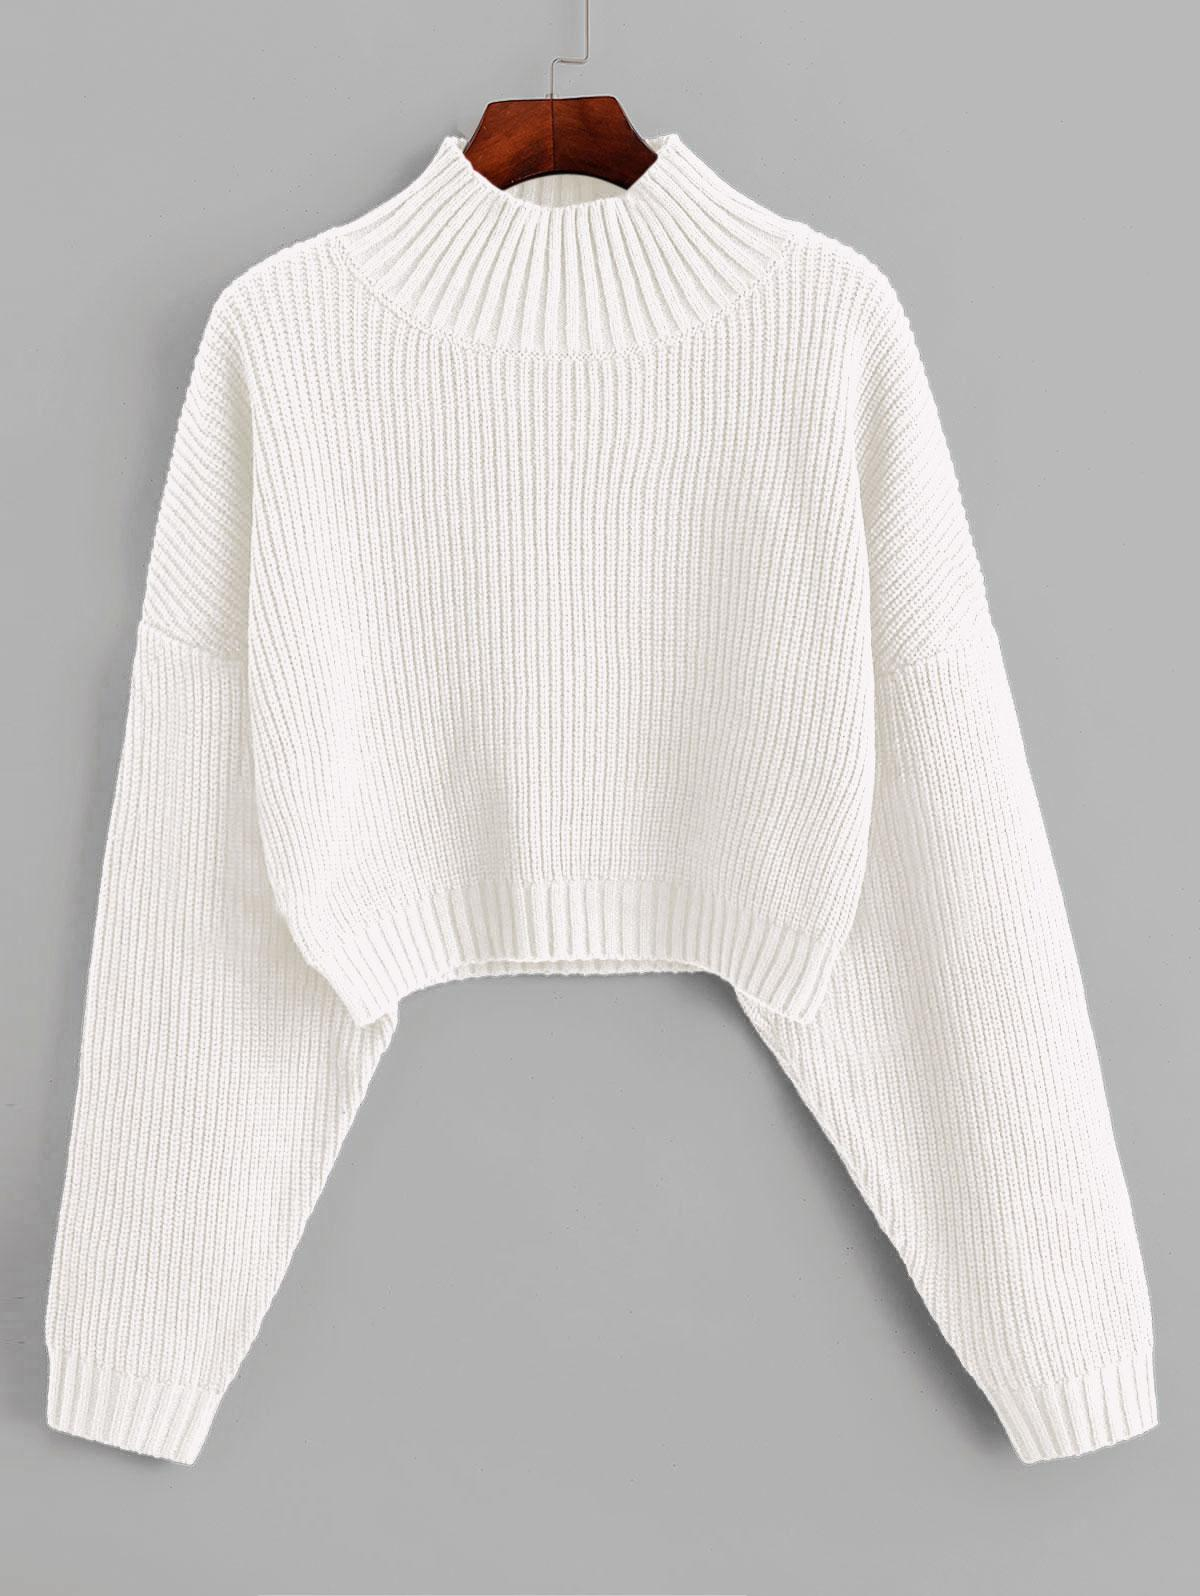 ZAFUL Drop Shoulder Mock Neck Plain Sweater